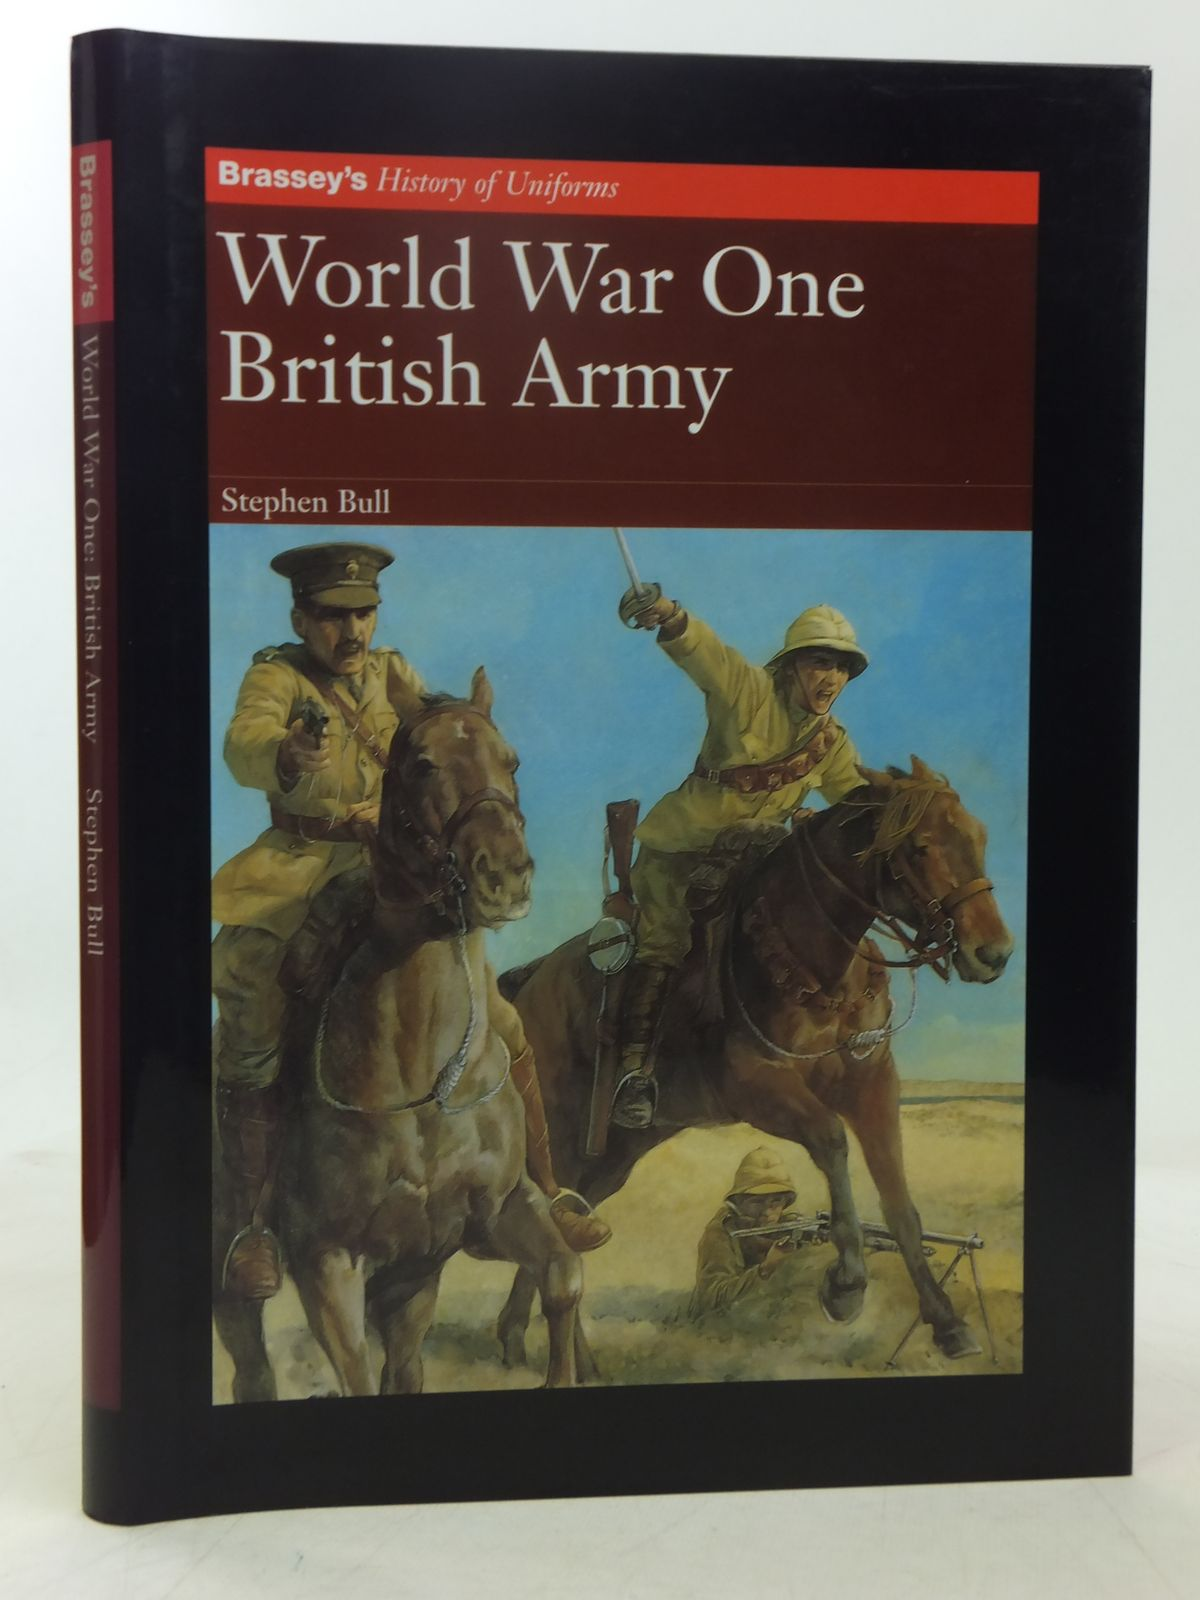 Photo of WORLD WAR ONE BRITISH ARMY written by Bull, Stephen illustrated by Hook, Christa published by Brassey's (STOCK CODE: 2118295)  for sale by Stella & Rose's Books